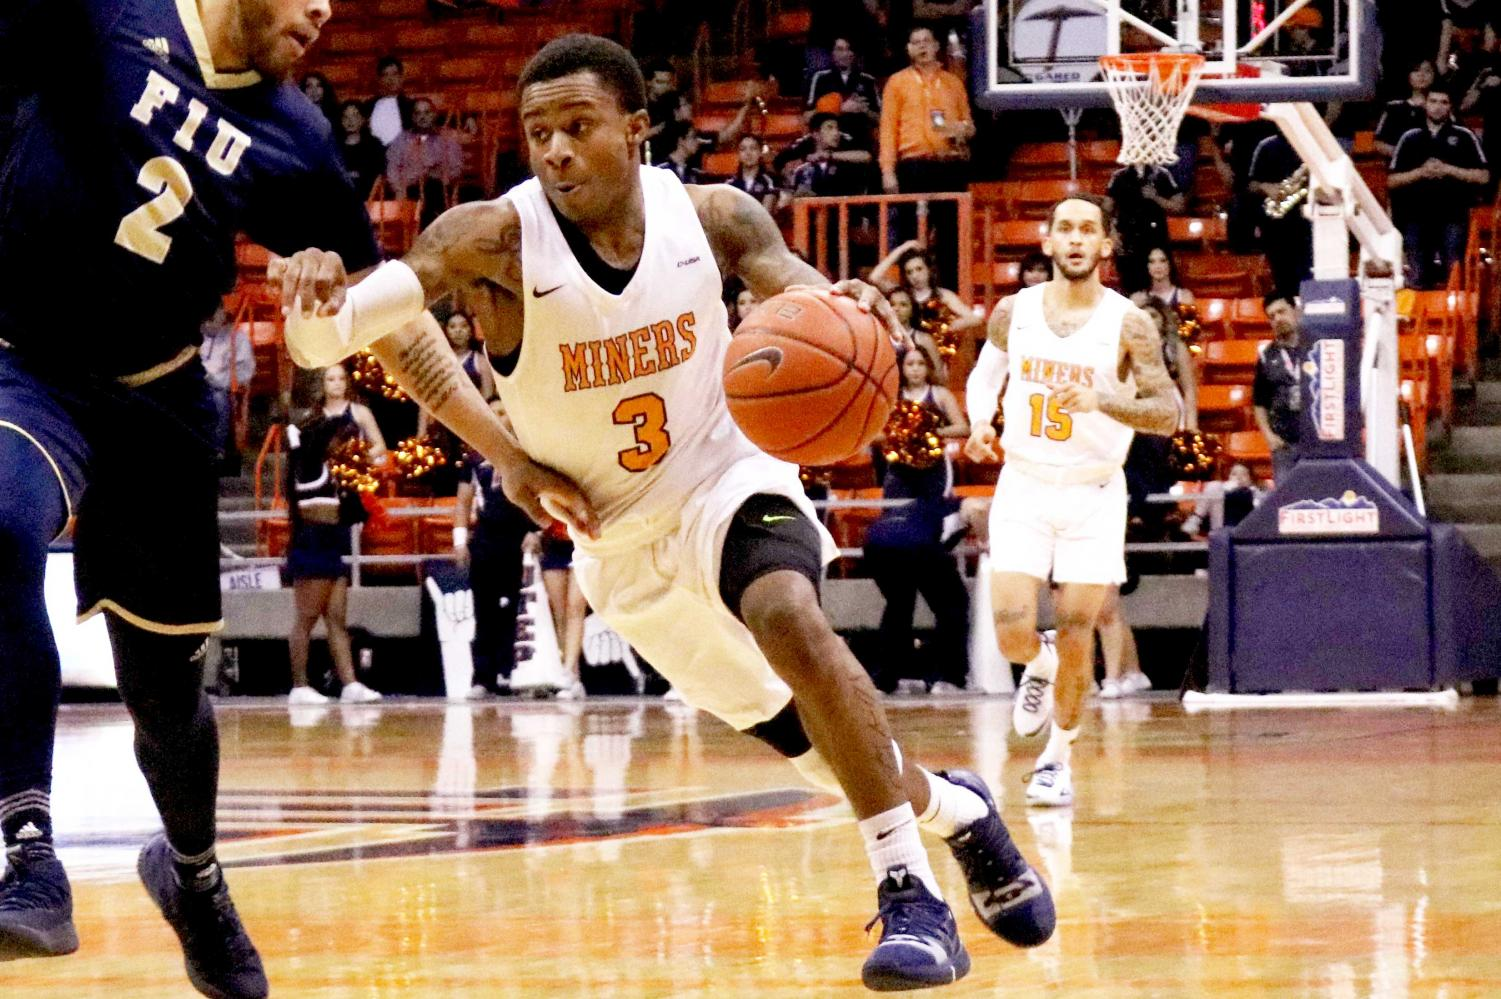 Sophomore guards Evan Gilyard (#3) and Kobe Magee (#15) announced through social media that they will be transferring from the UTEP men's basketball program.